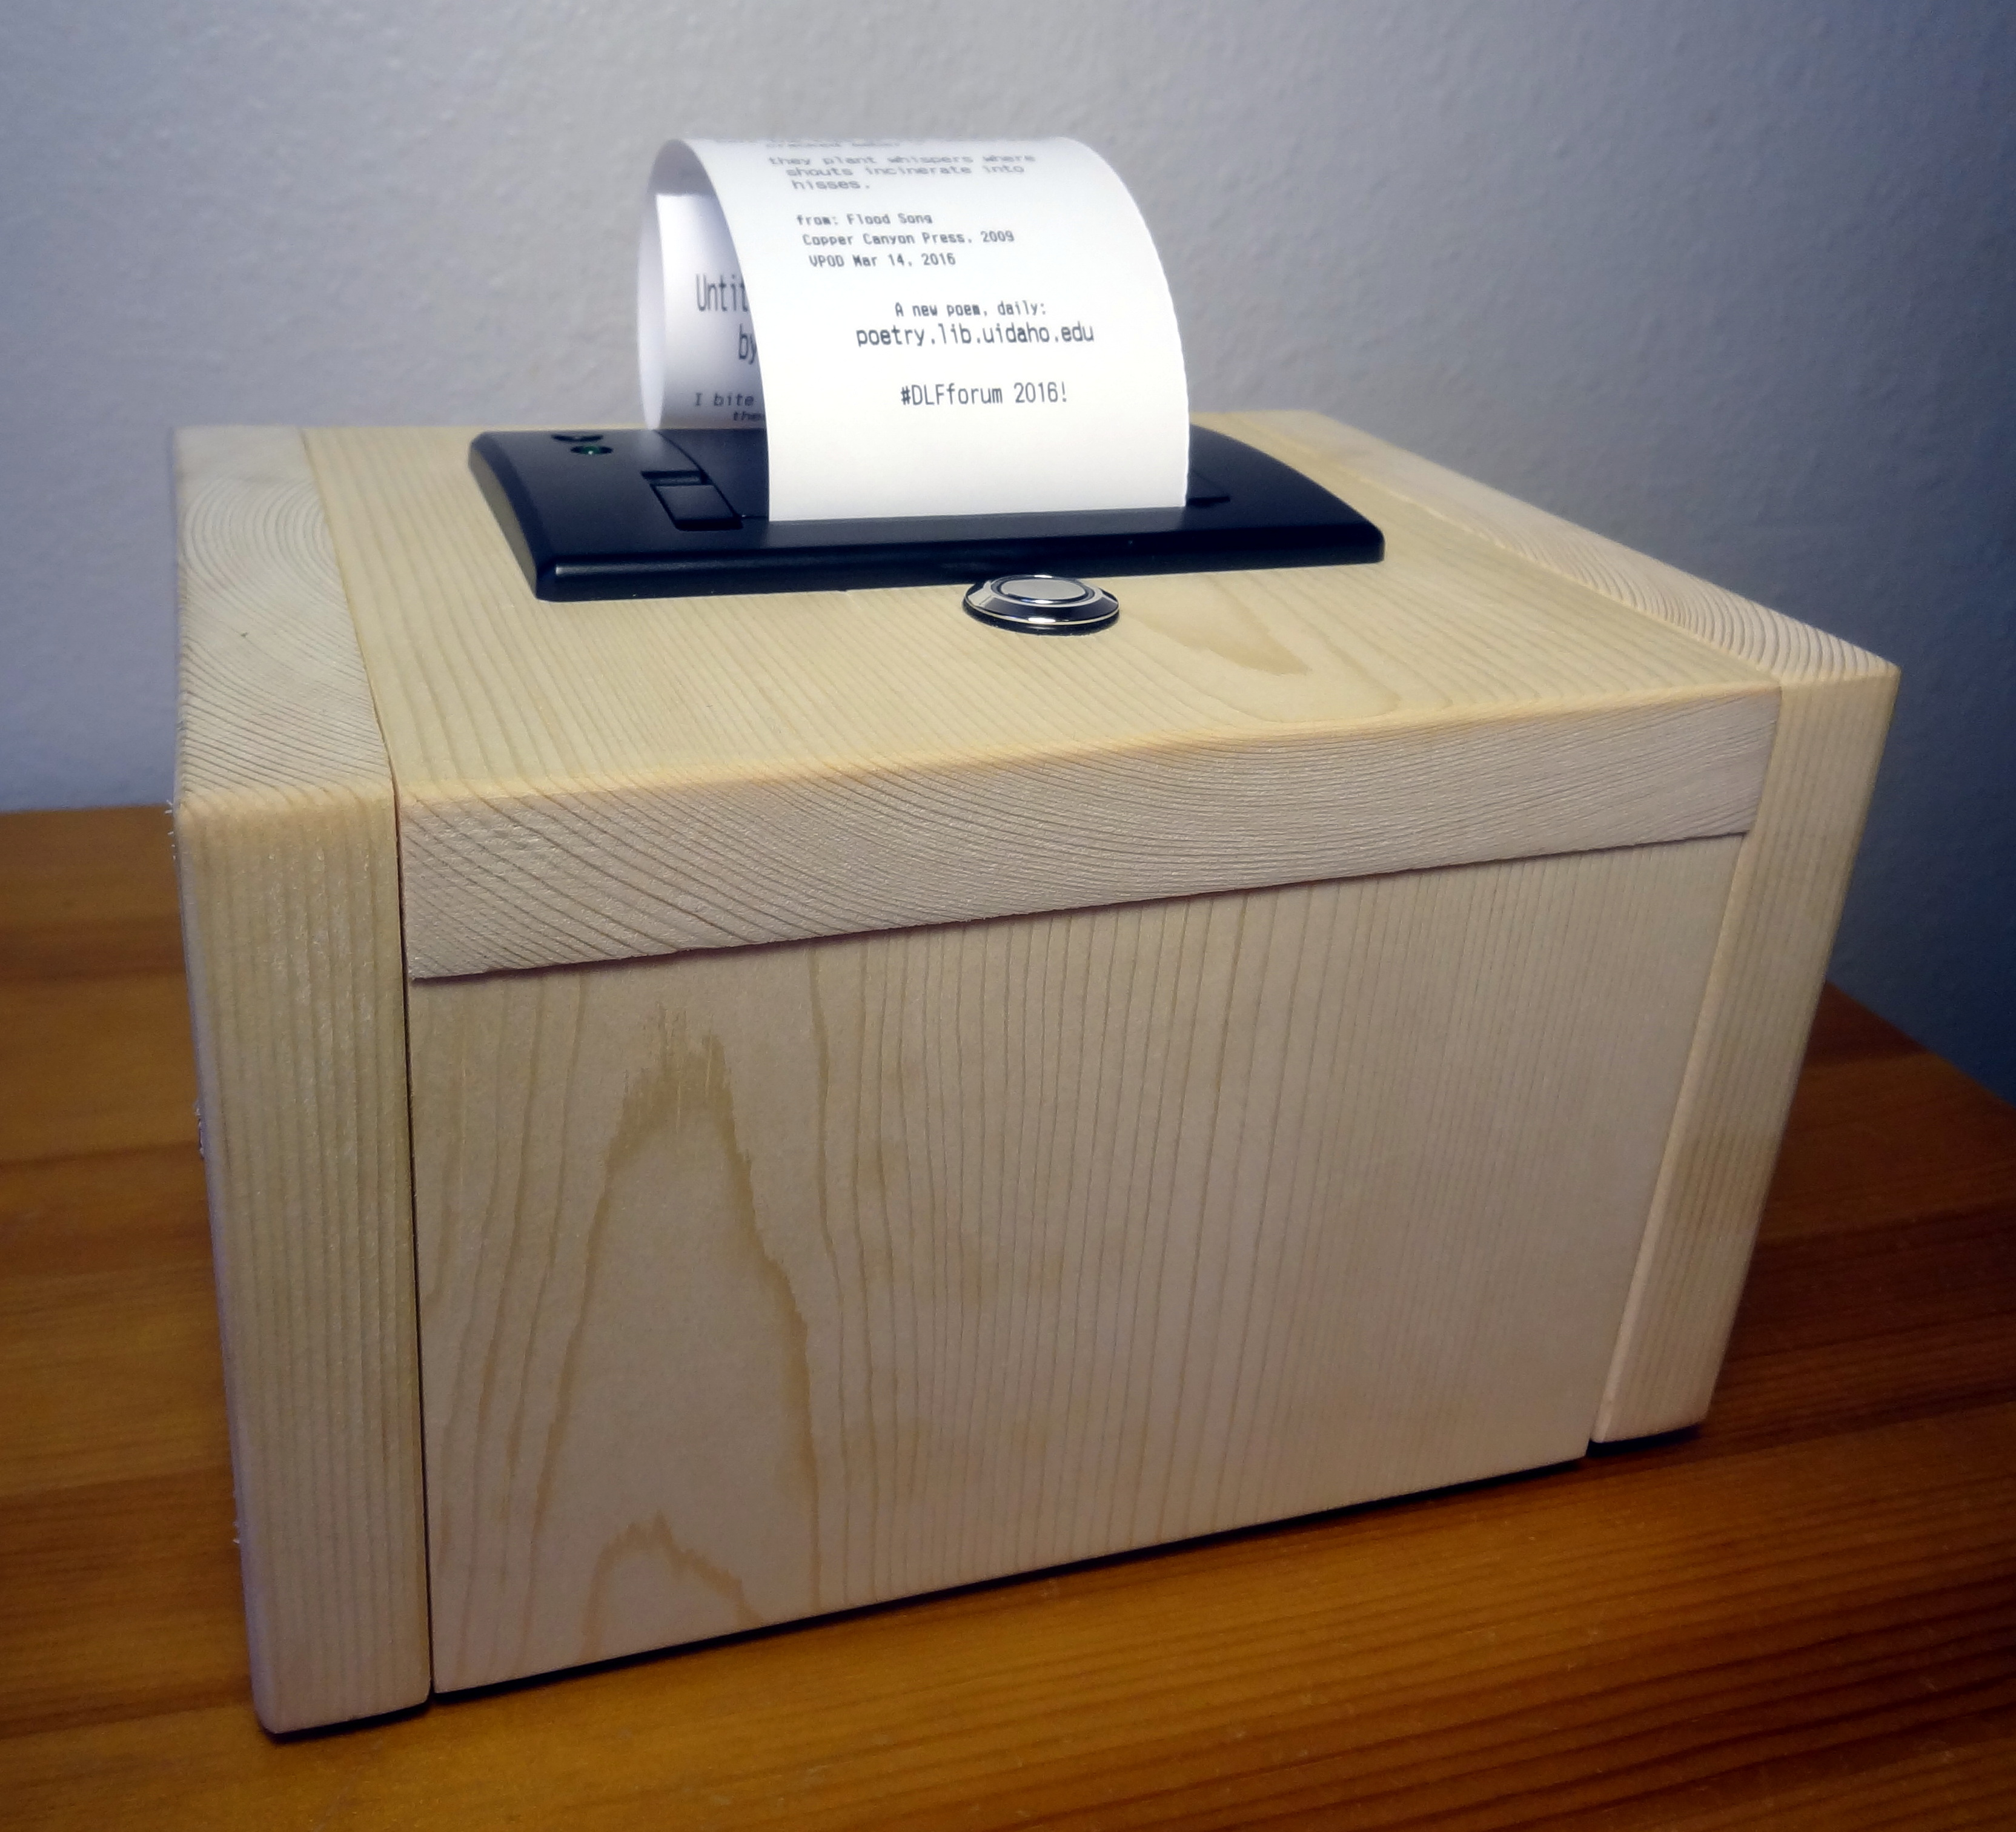 poemBot wooden case